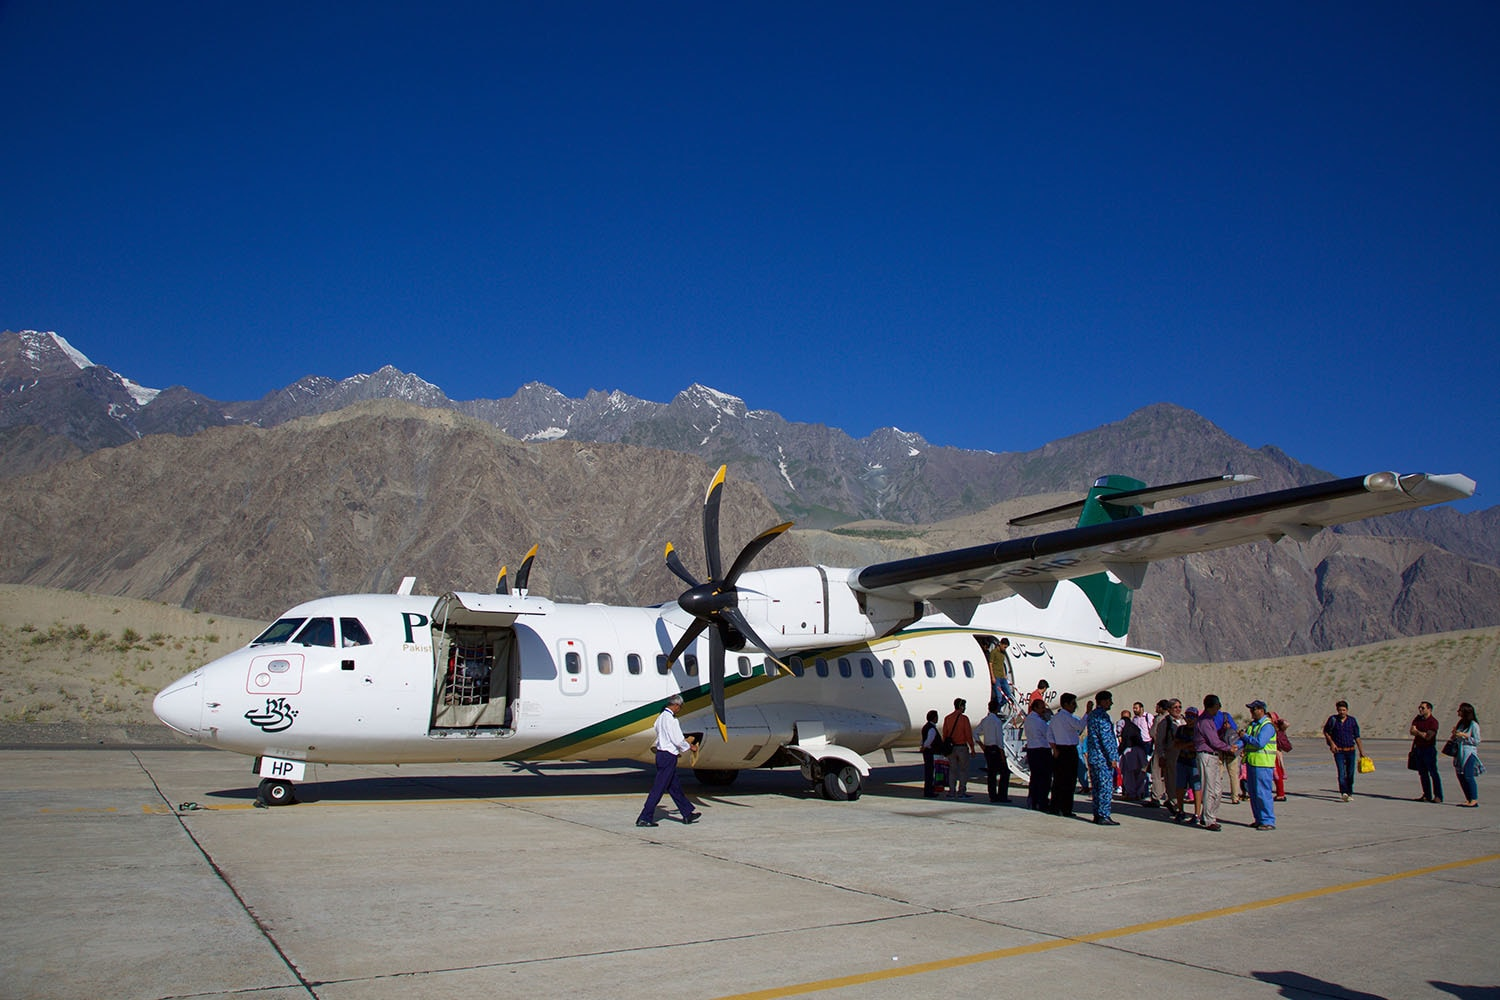 The PK451 flight that took us to Skardu. We passed through Nanga Parbat and Lake Saif-ul-Mulook among other landmark destinations.